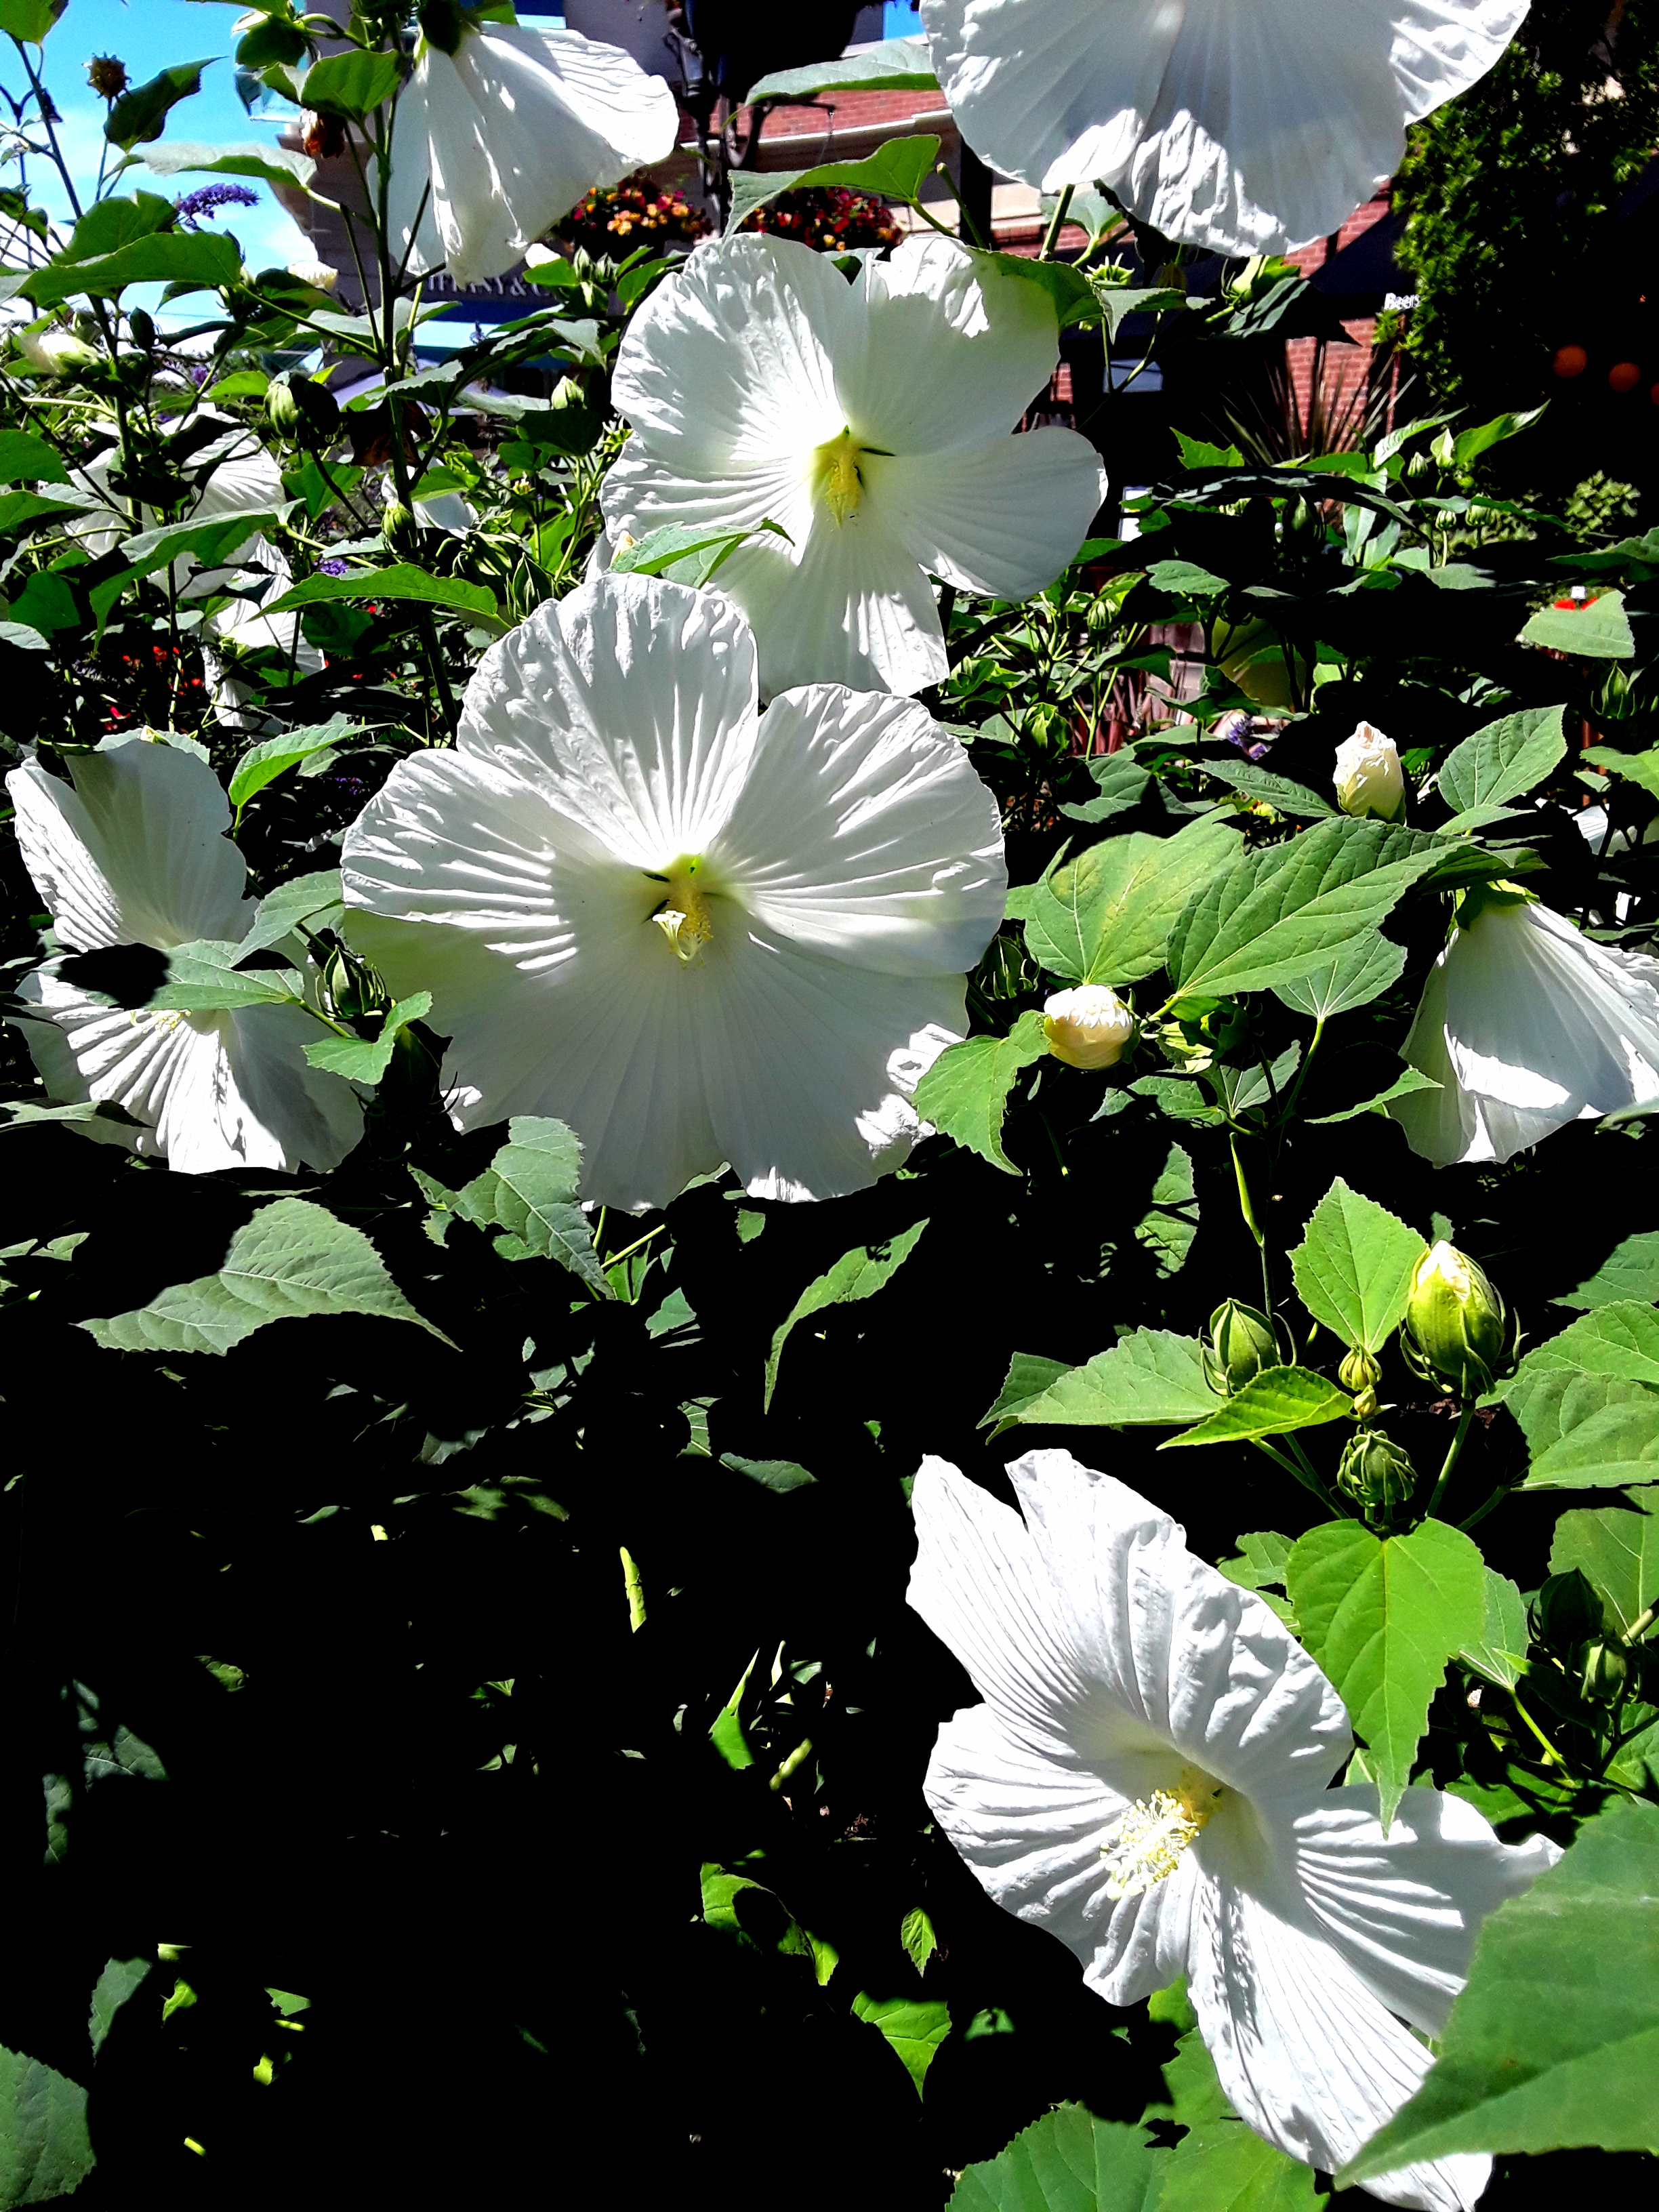 Giant white hibiscus flowers shine sunlight